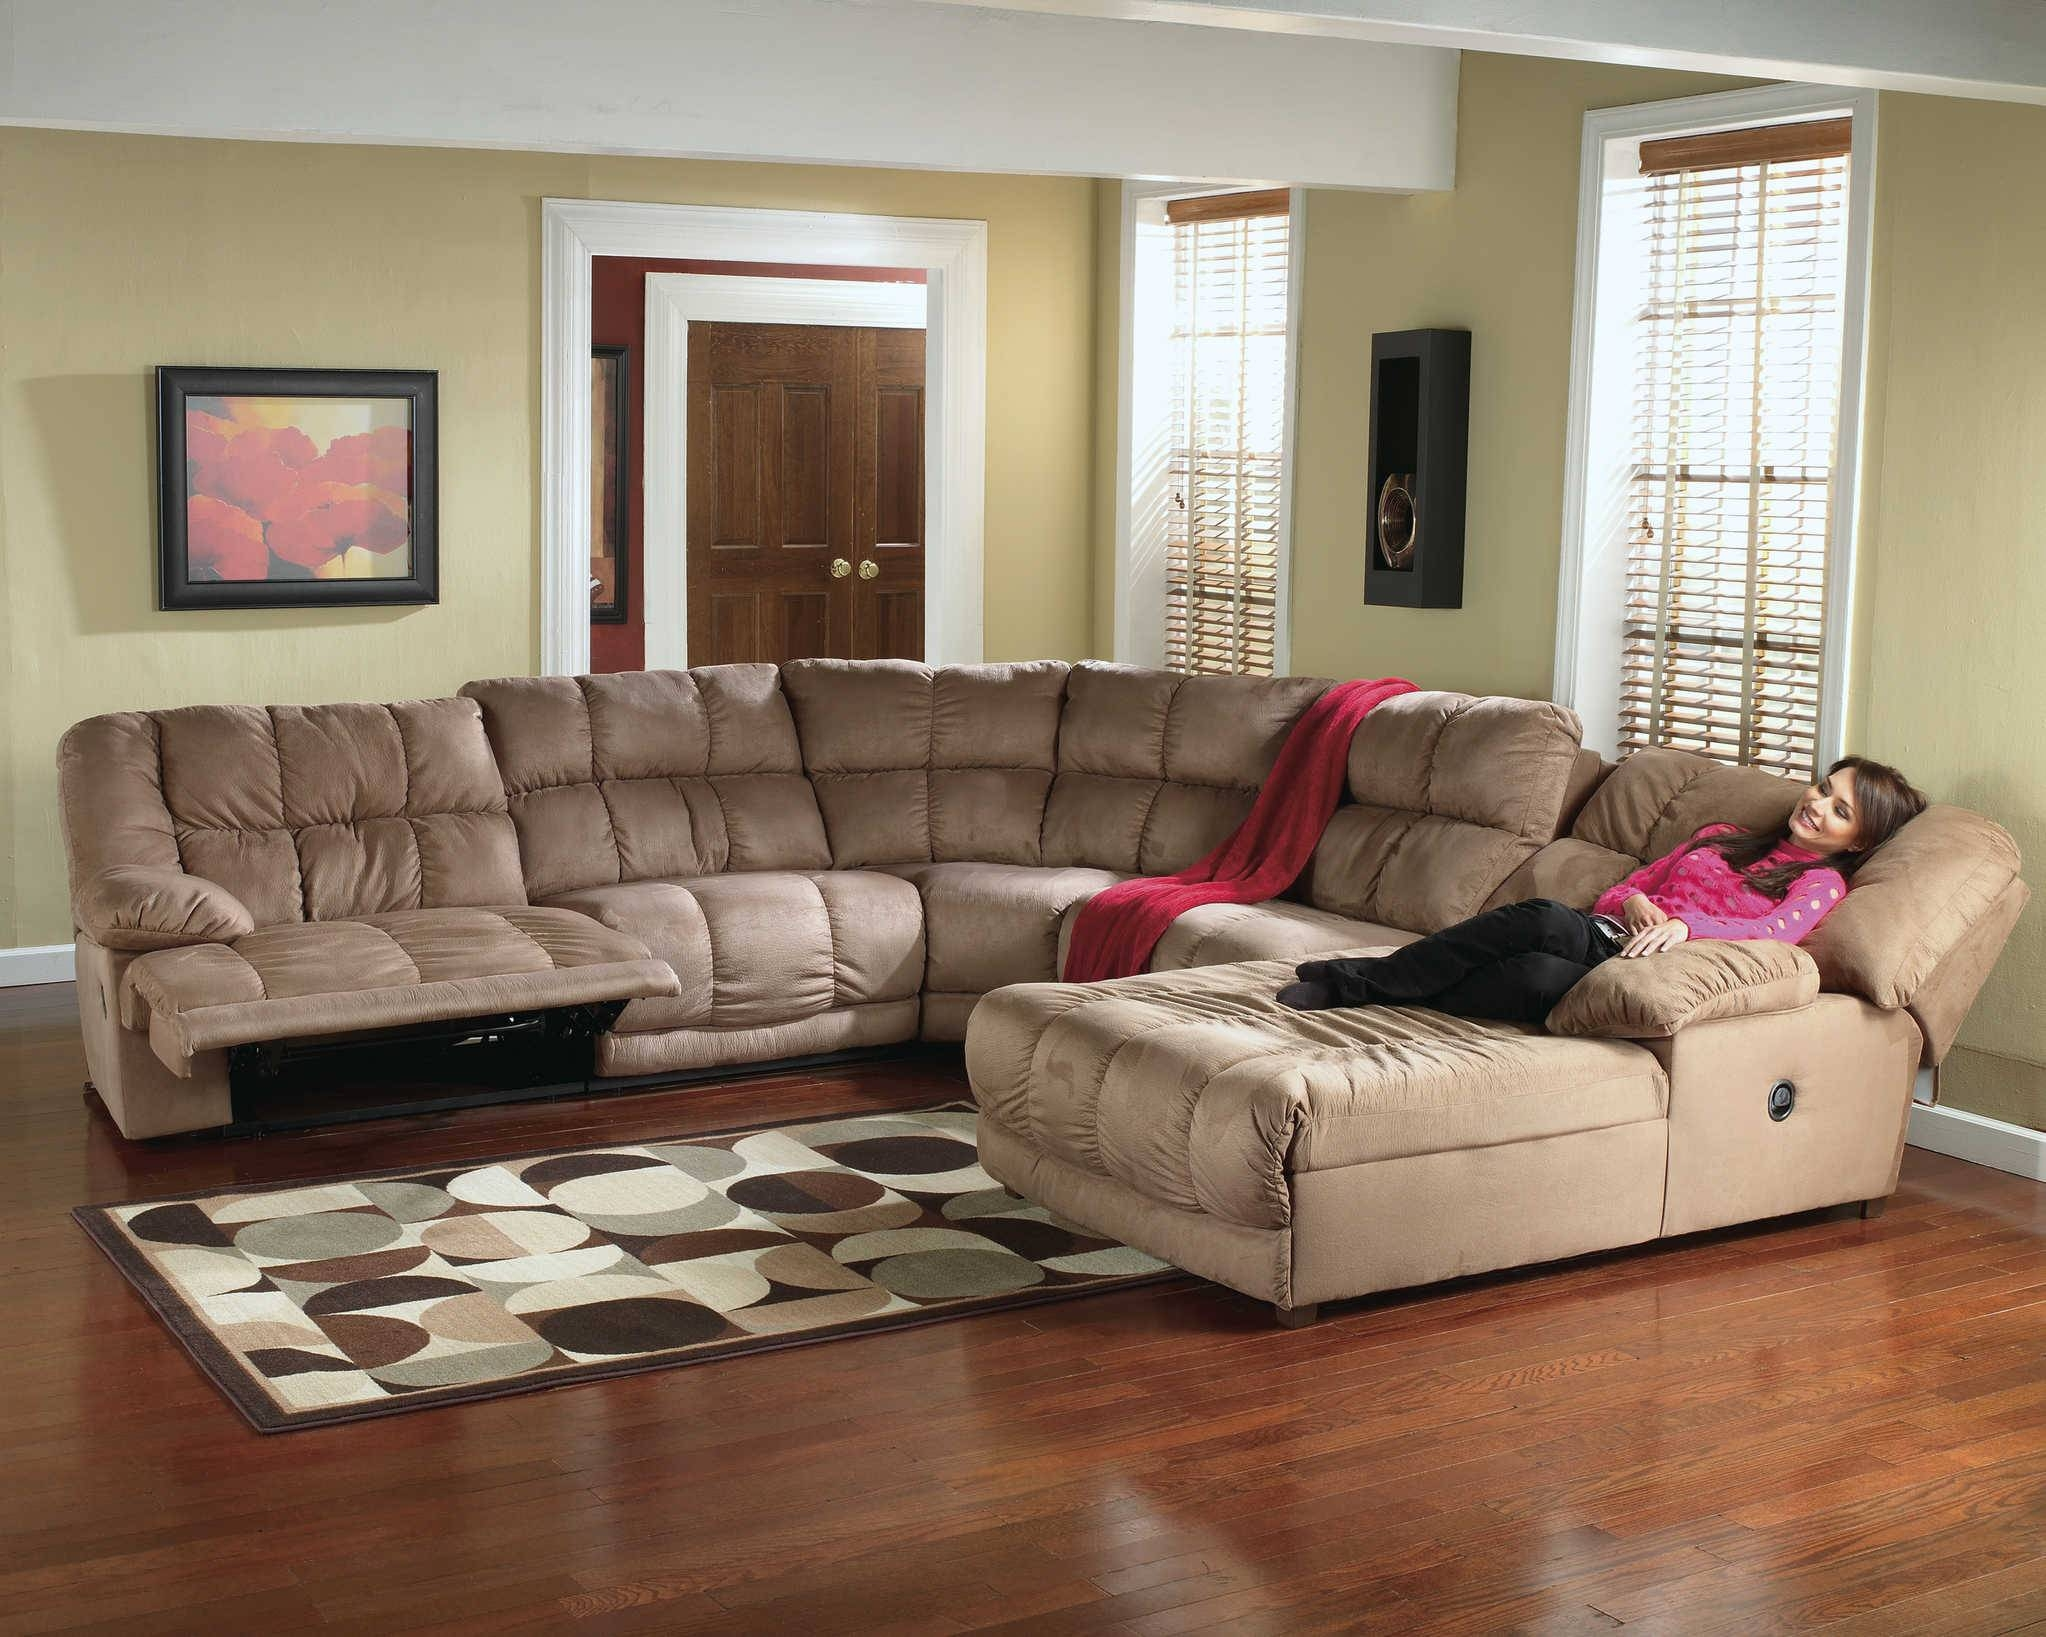 79 Exciting Large Sectional Sofas With Recliners Home Design | Hoozoo regarding Sectional Sofa Recliners (Image 2 of 30)